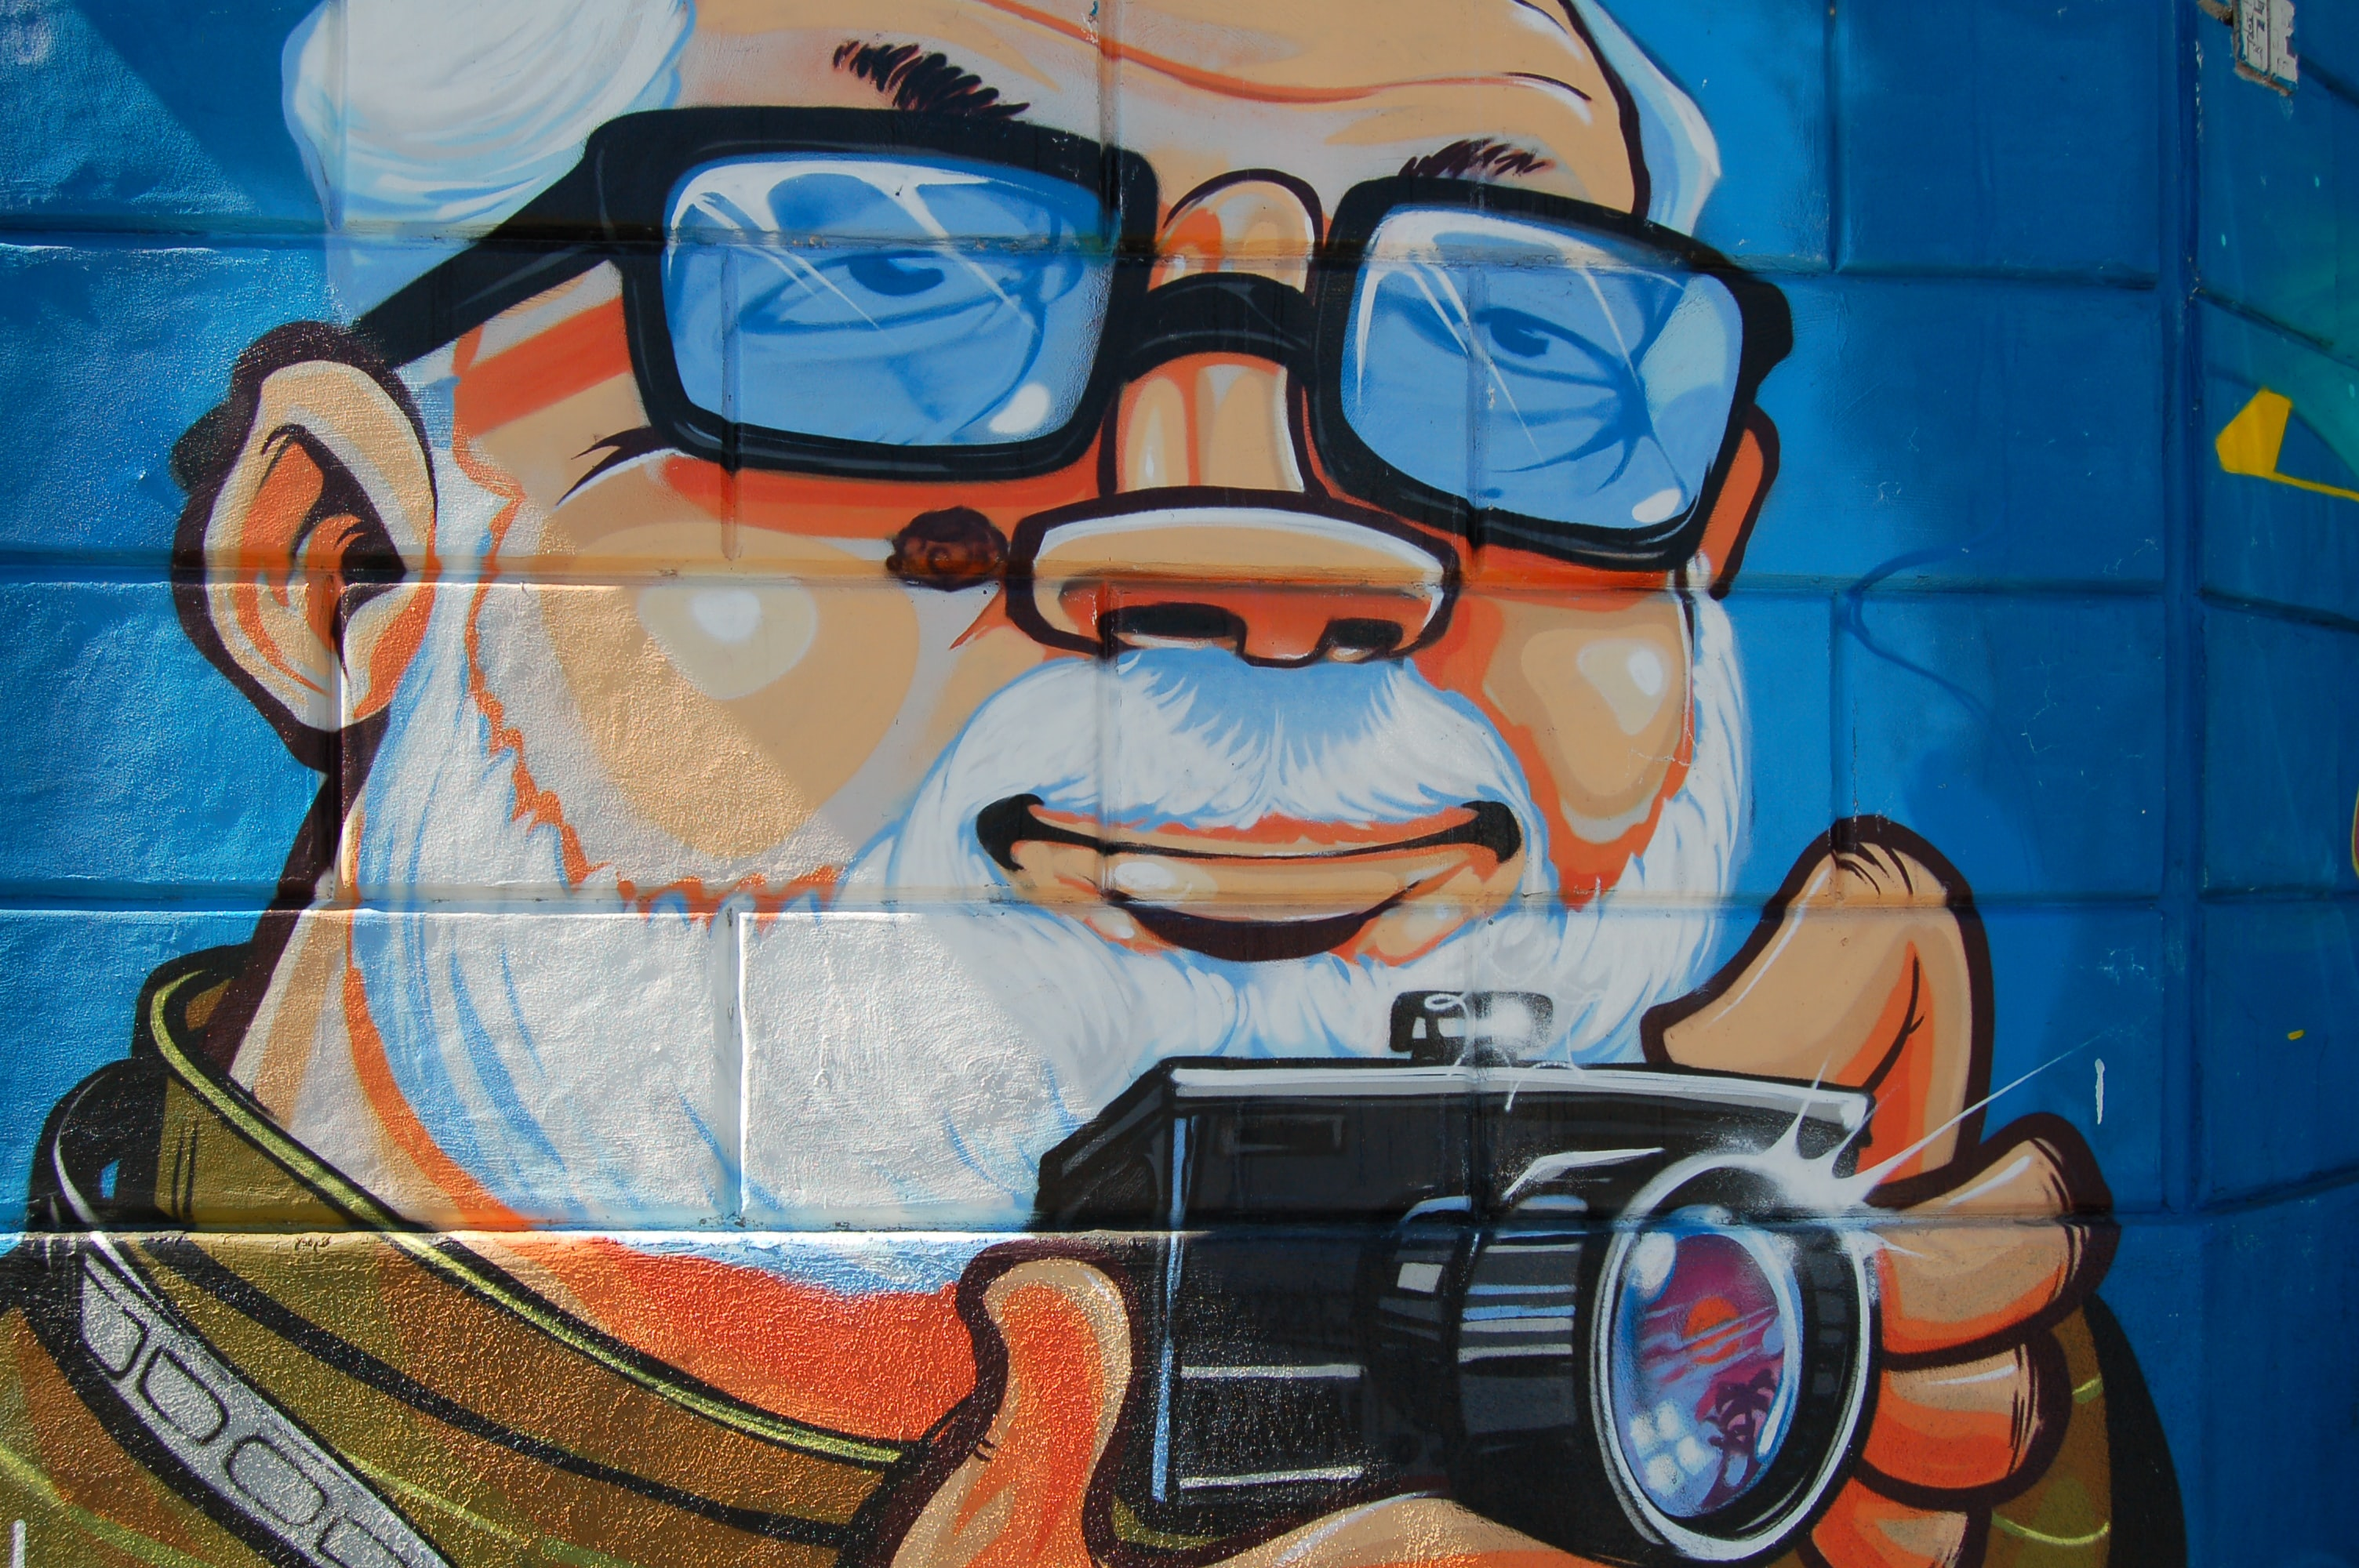 A wall mural of an old man with a white beard and hair holding a camera.